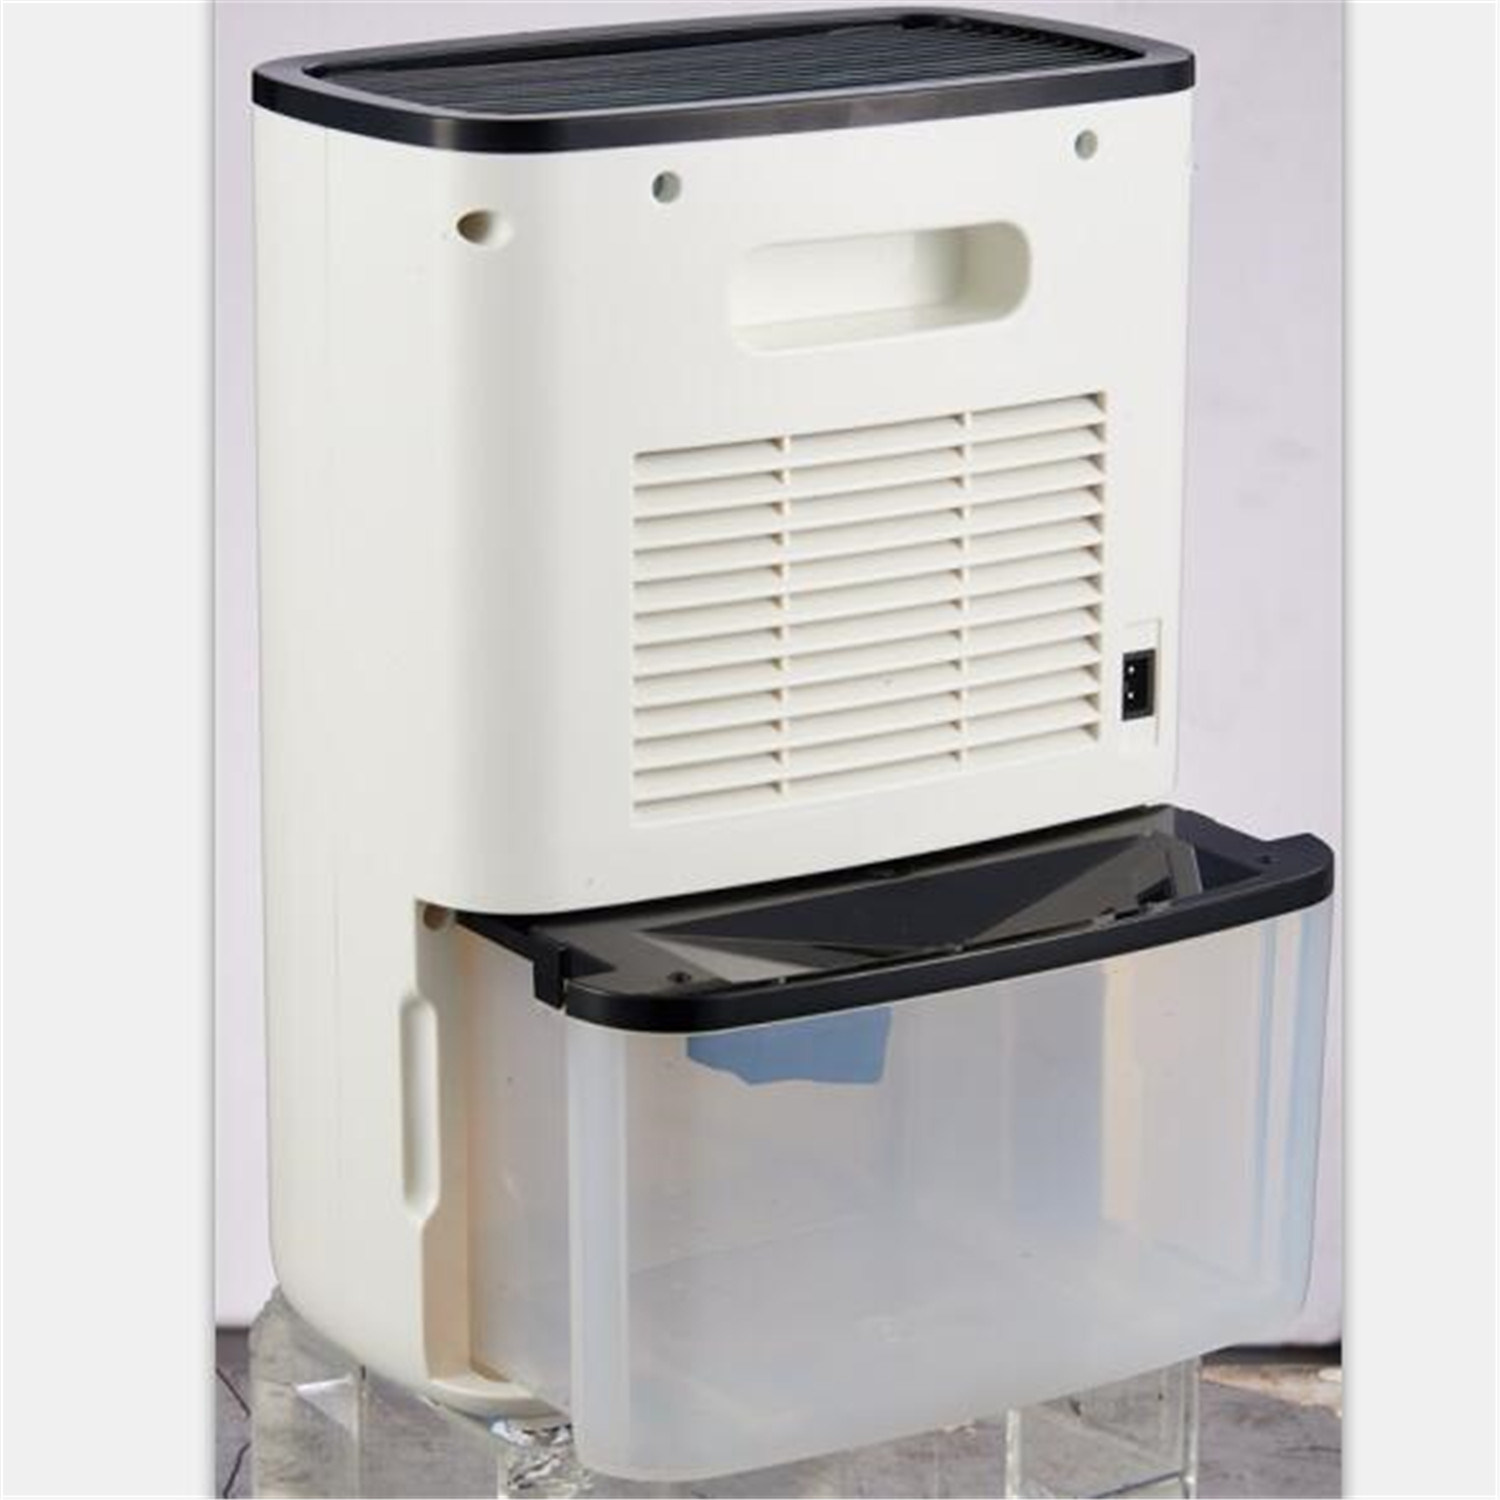 2L Water Tank Semiconductor Dryer with Ionizer